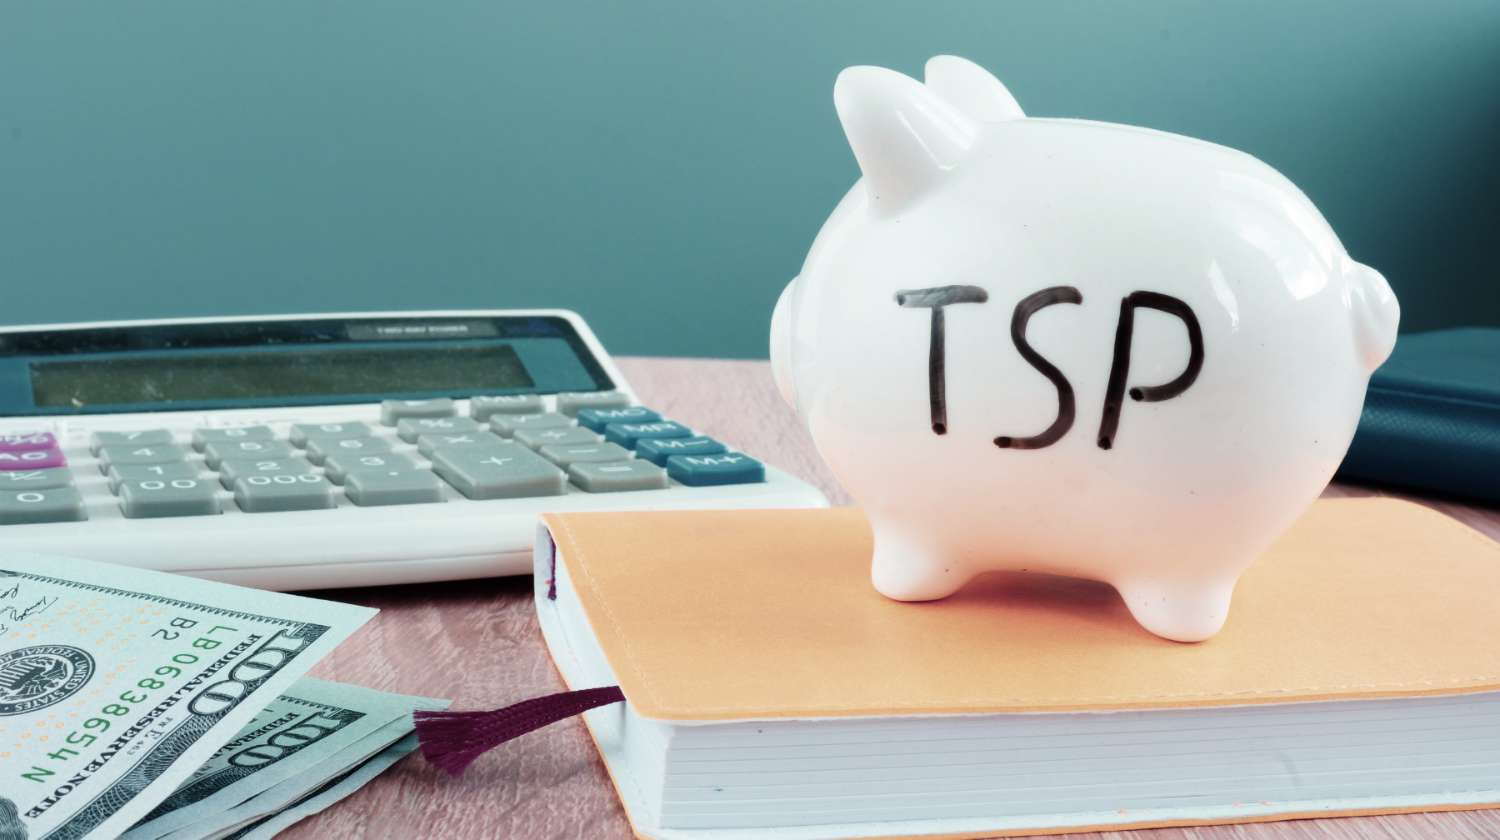 Feature | thrift savings plan tsp | Everything You Need To Know About A Thrift Savings Plan (TSP) | Inside Your IRA | traditional tsp and roth tsp